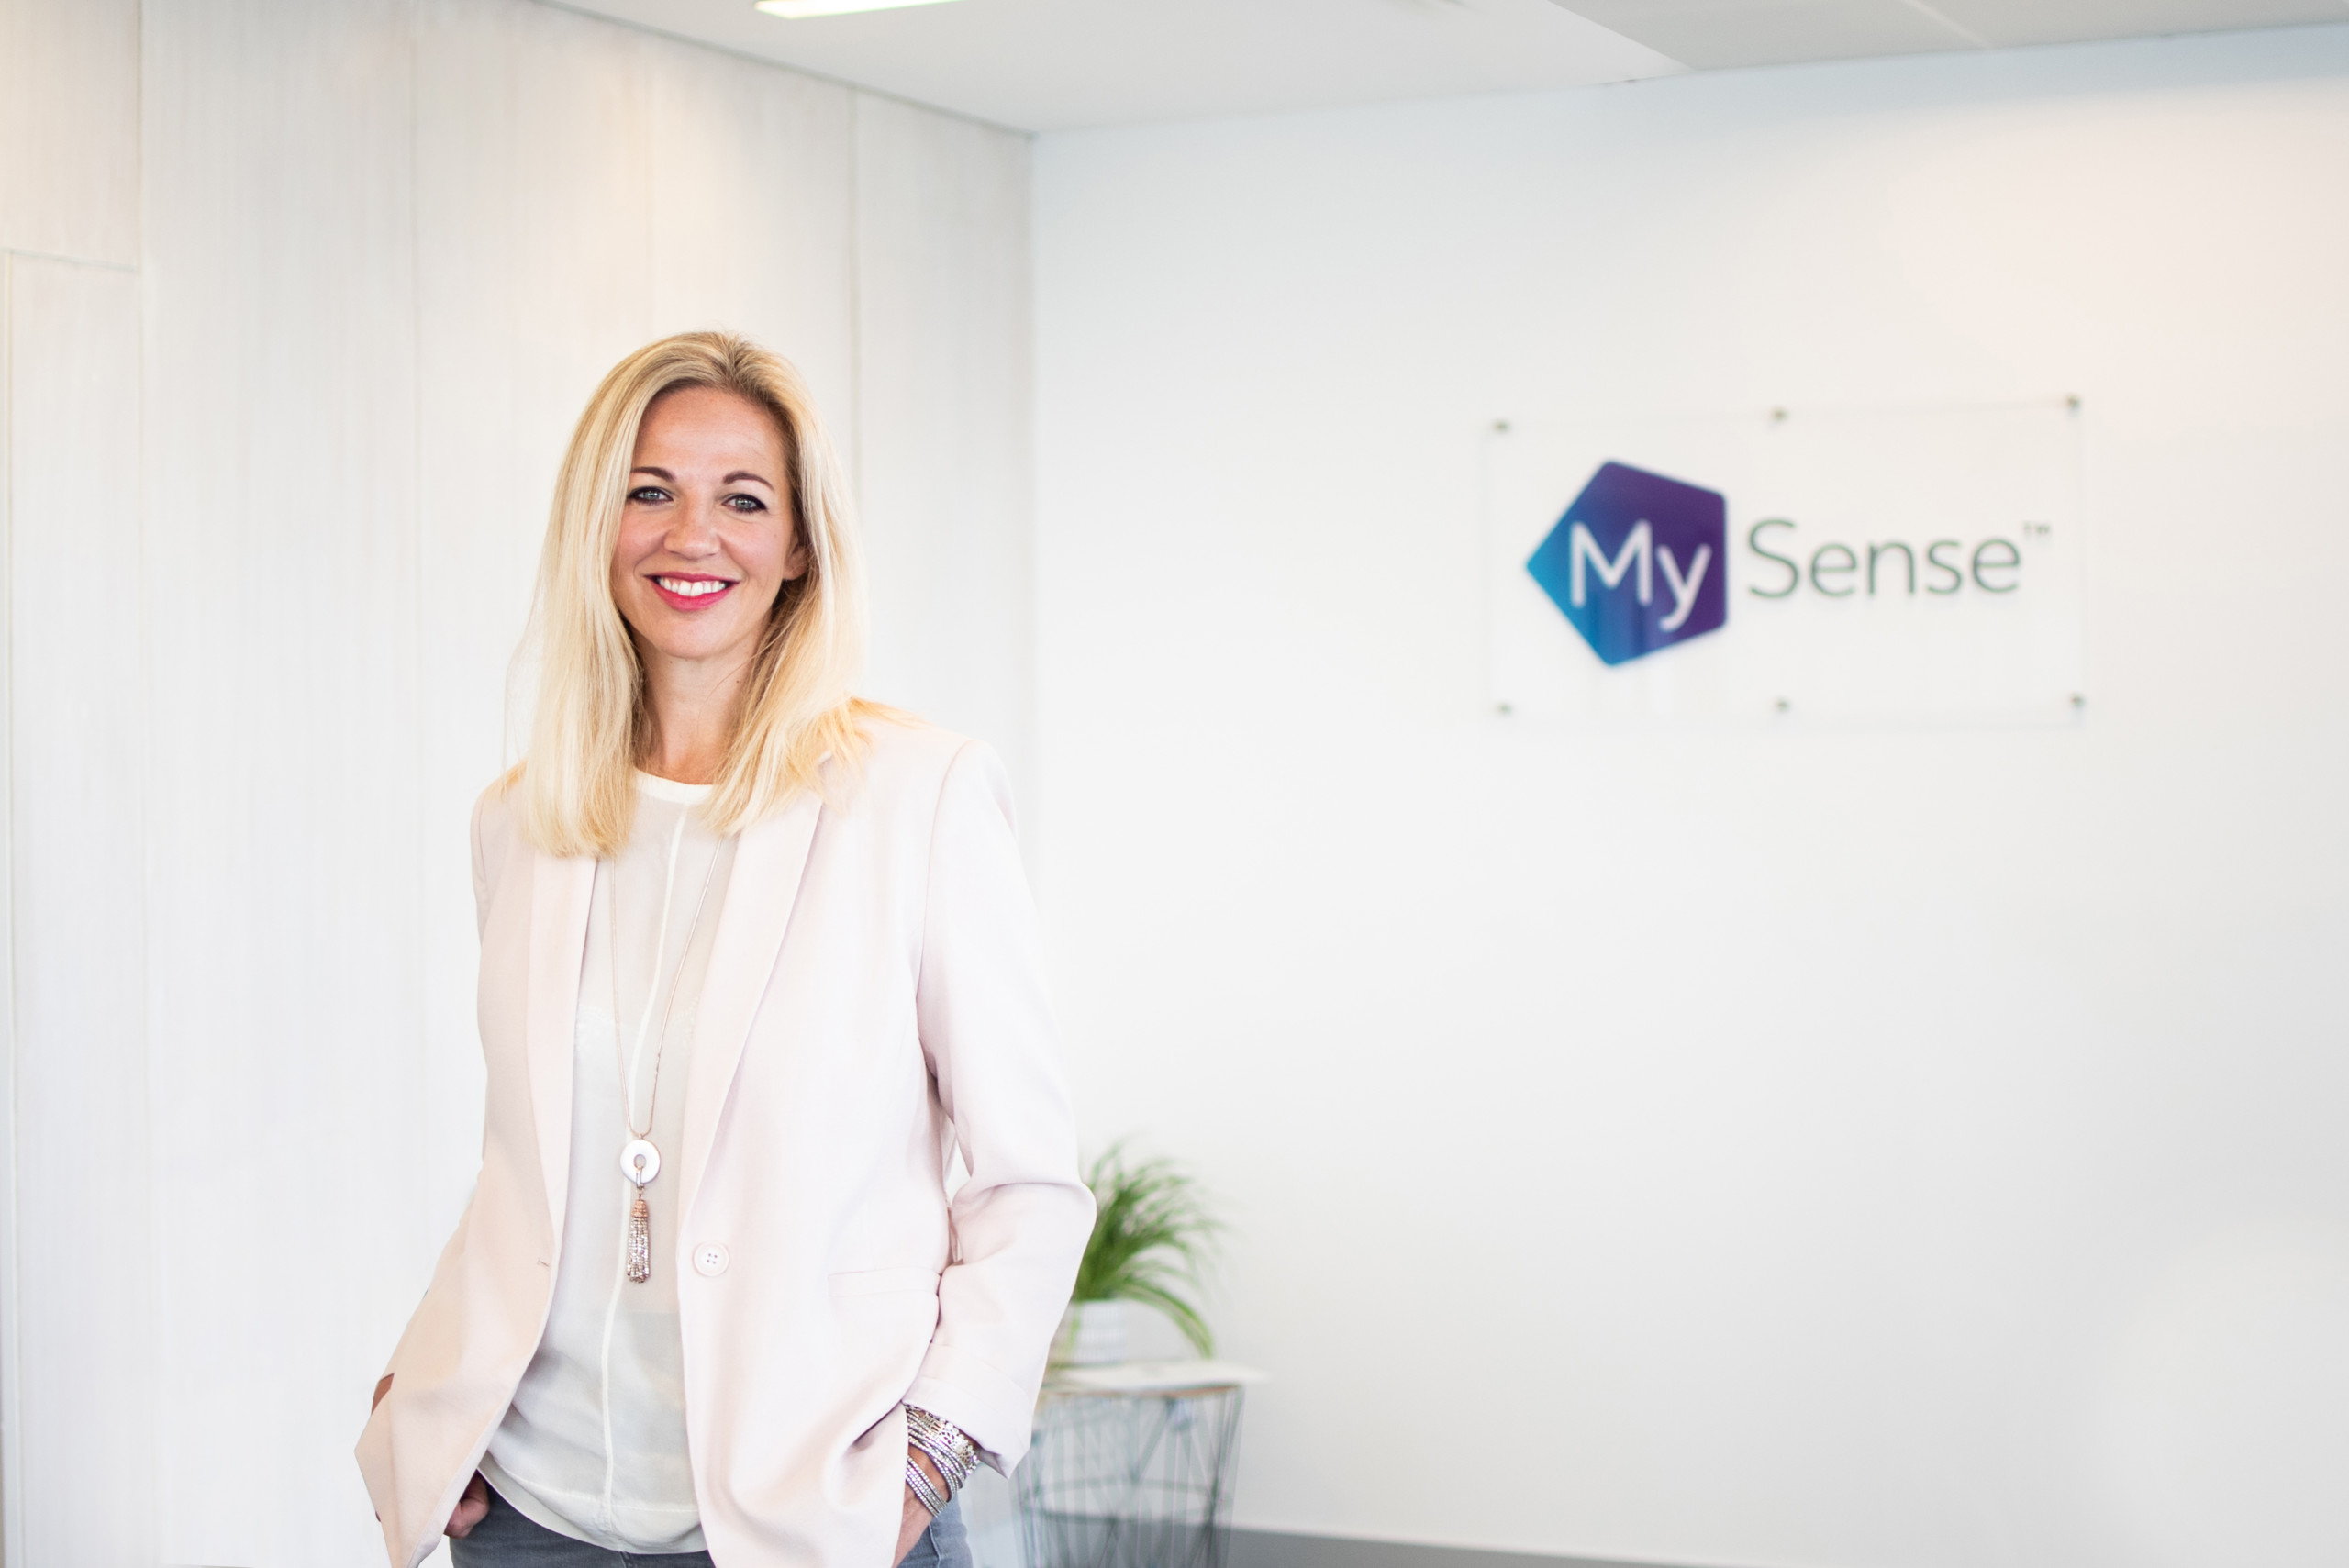 The Managing Director For MySense UK, Olivia Harker